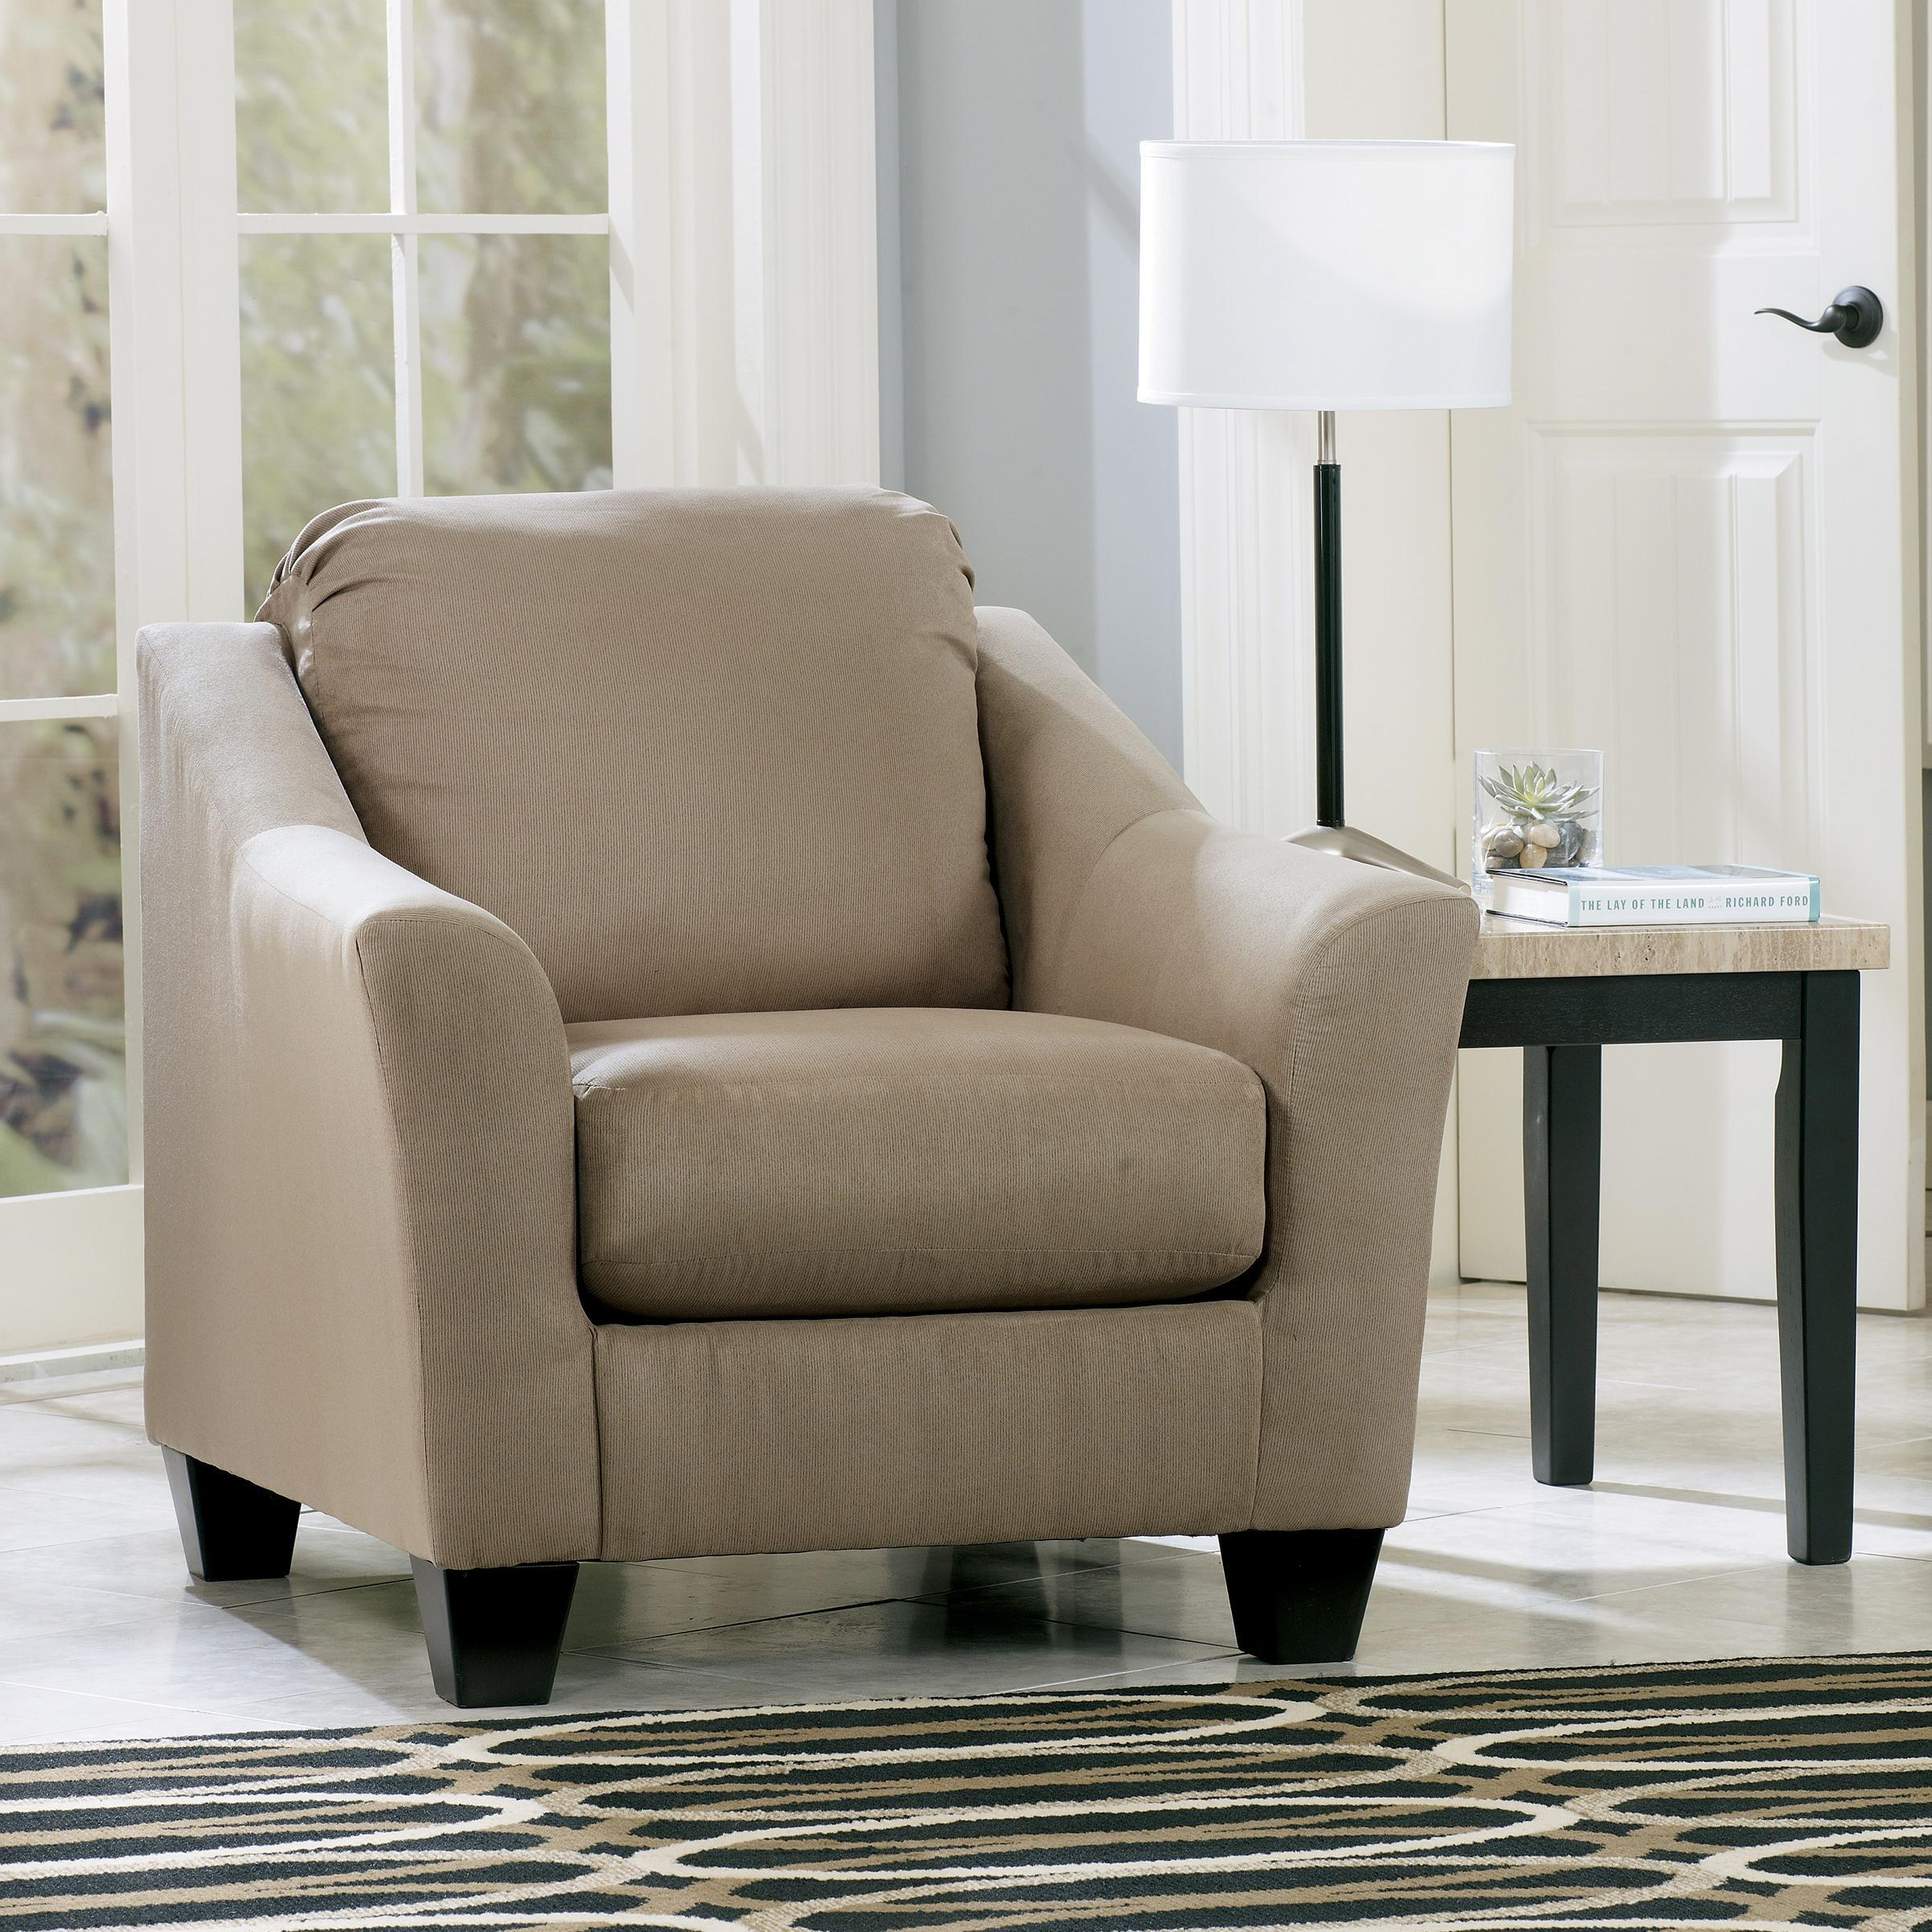 Kyle - Clay Accent Chair w/ Loose Seat Cushion